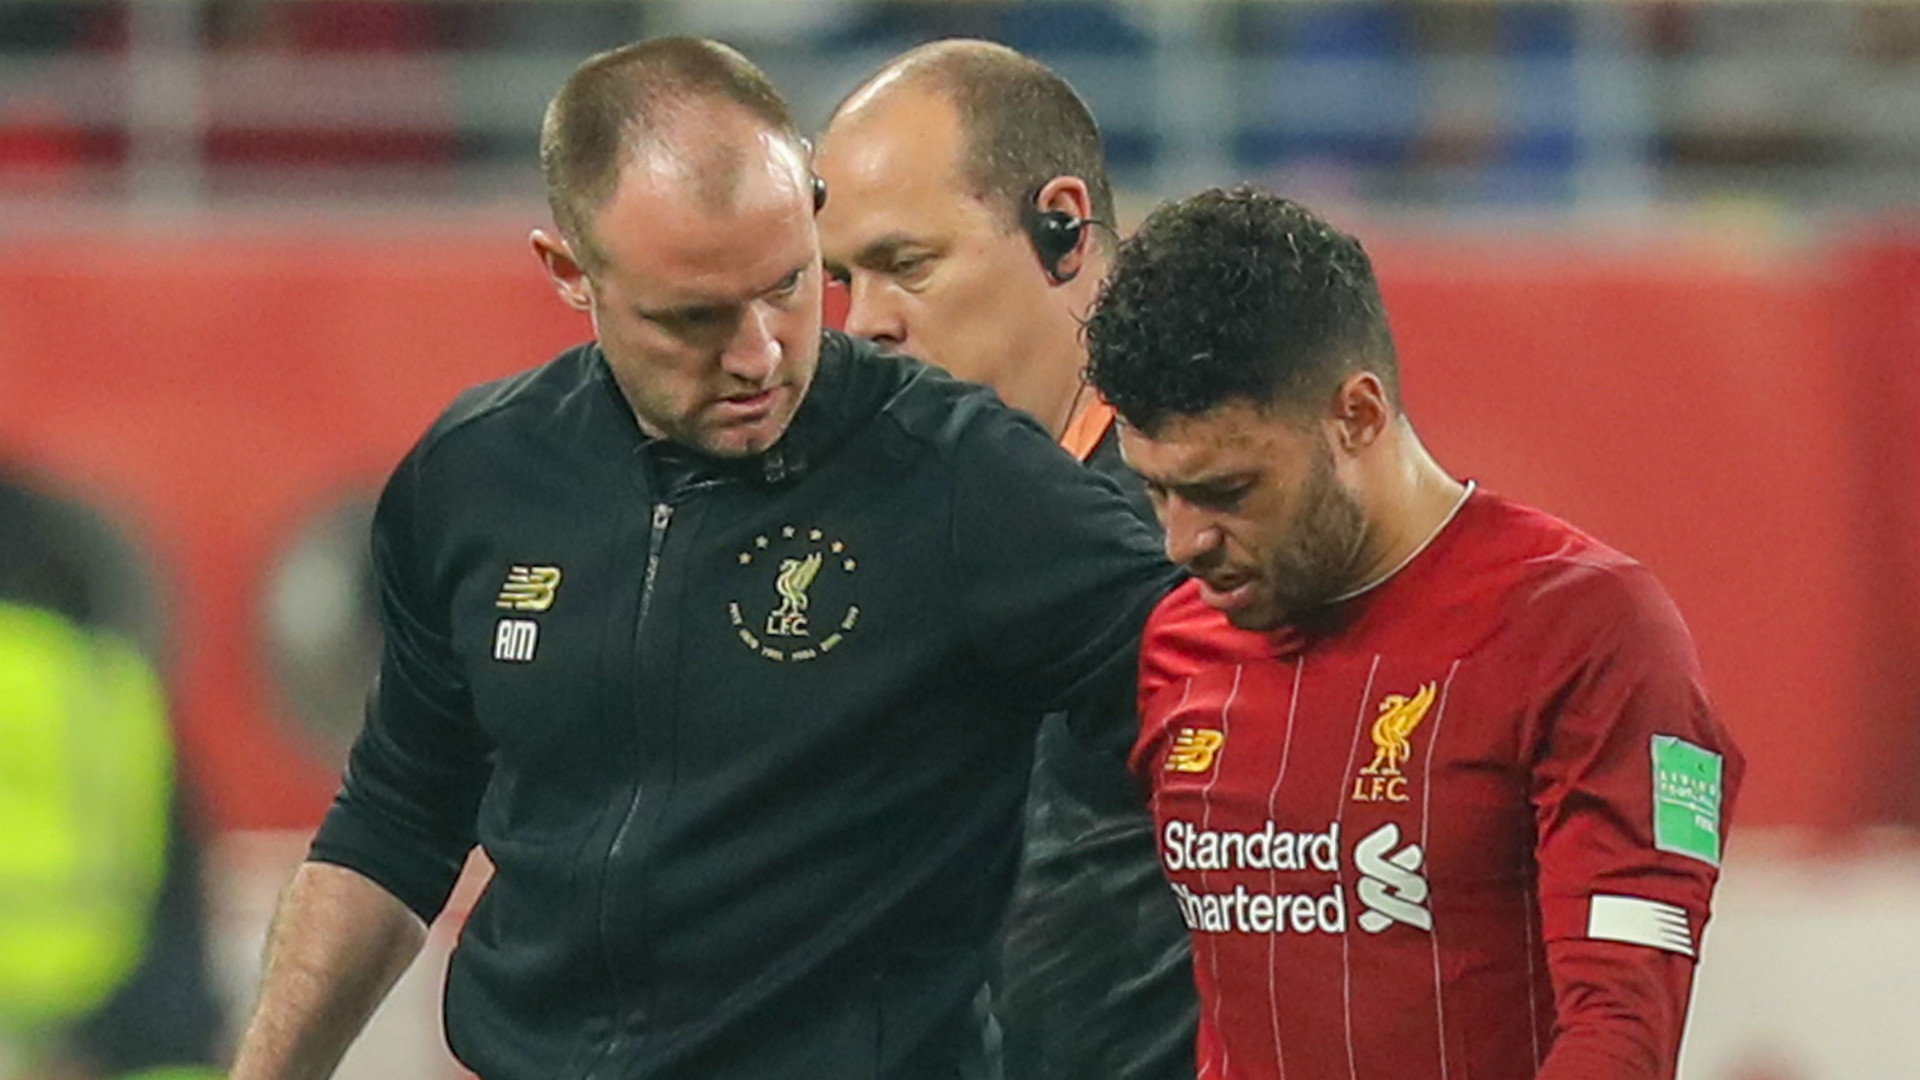 Alex Oxlade-Chamberlain suffers ankle ligament damage, Jurgen Klopp confirms